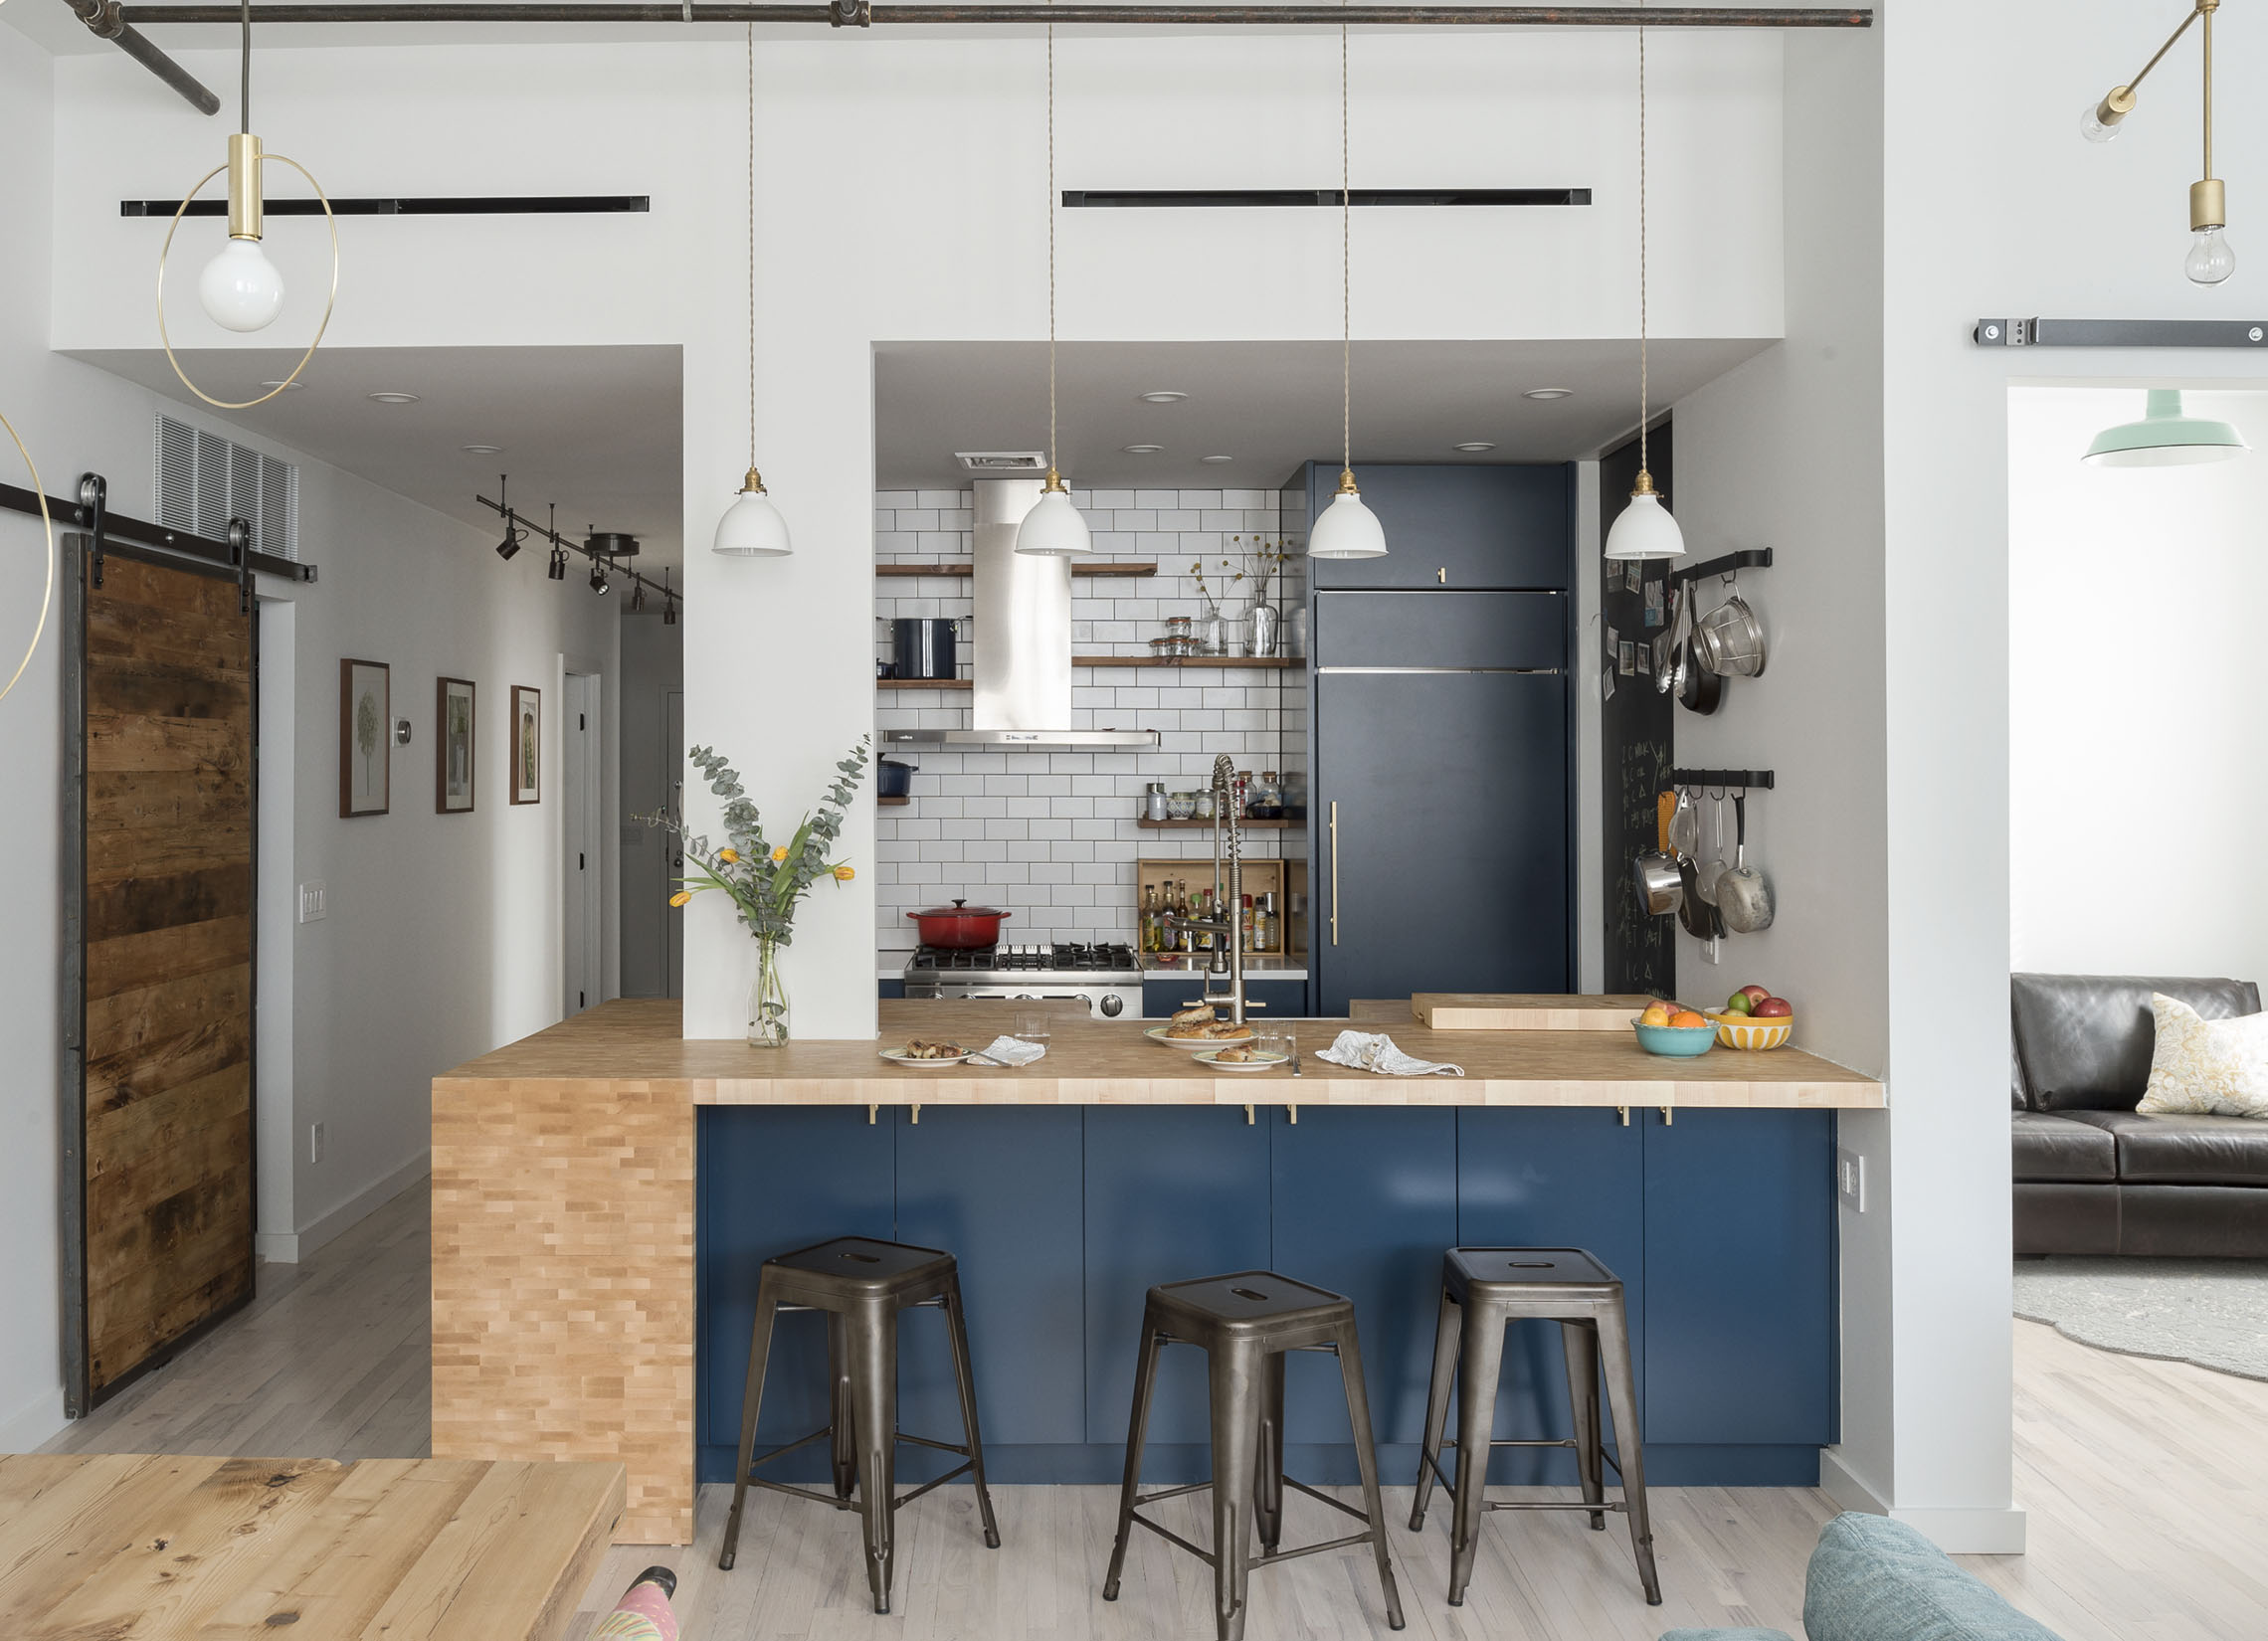 Boerum Hill Loft  Our first project in a former factory, in Boerum Hill, Brooklyn, is a cooks kitchen using end grain butcher block with an industrial feel, taking advantage of abundant natural daylighting.